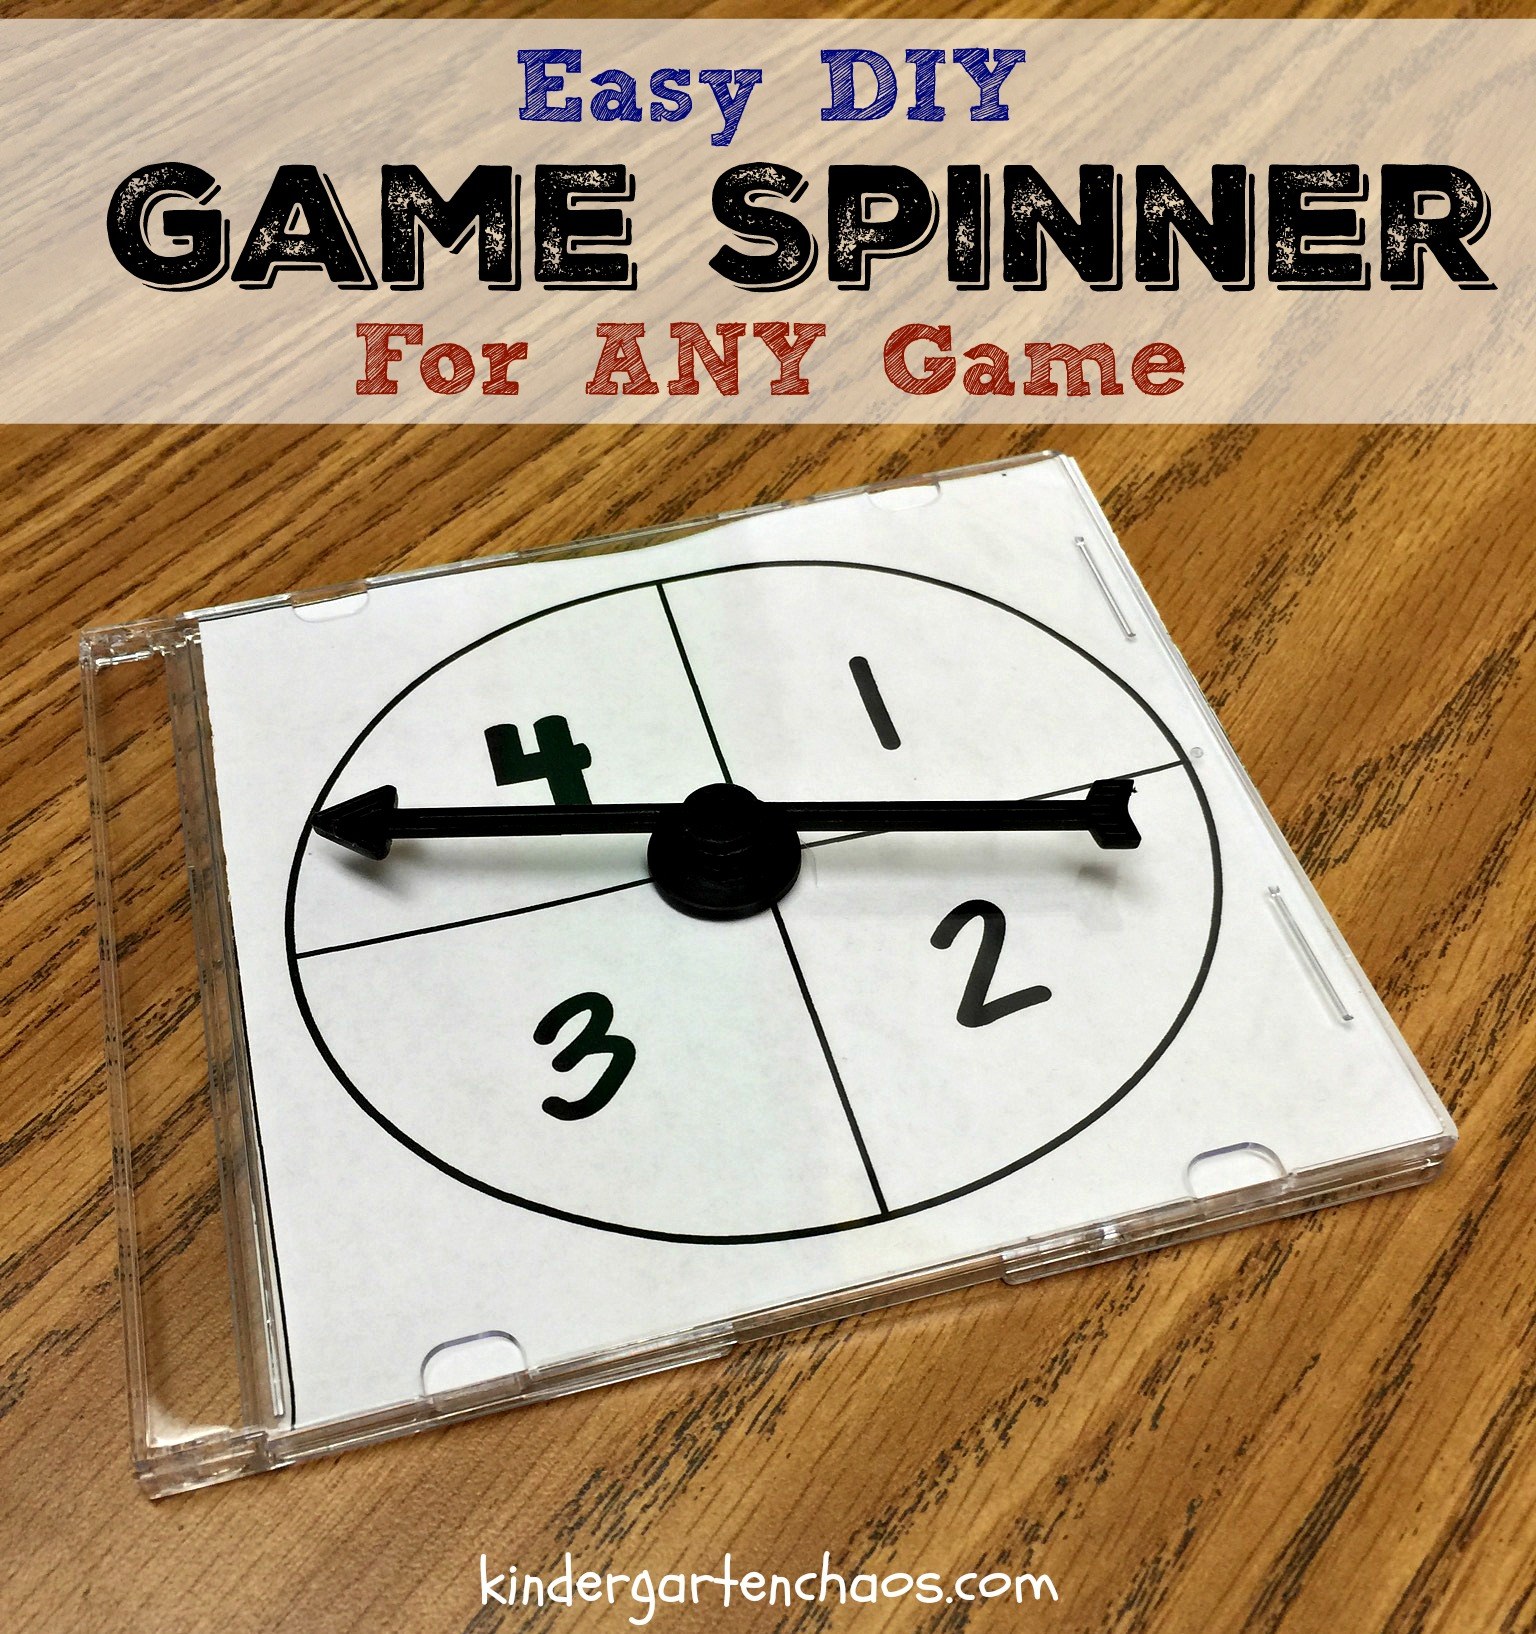 Make Your Own Interchangeable Game Spinner